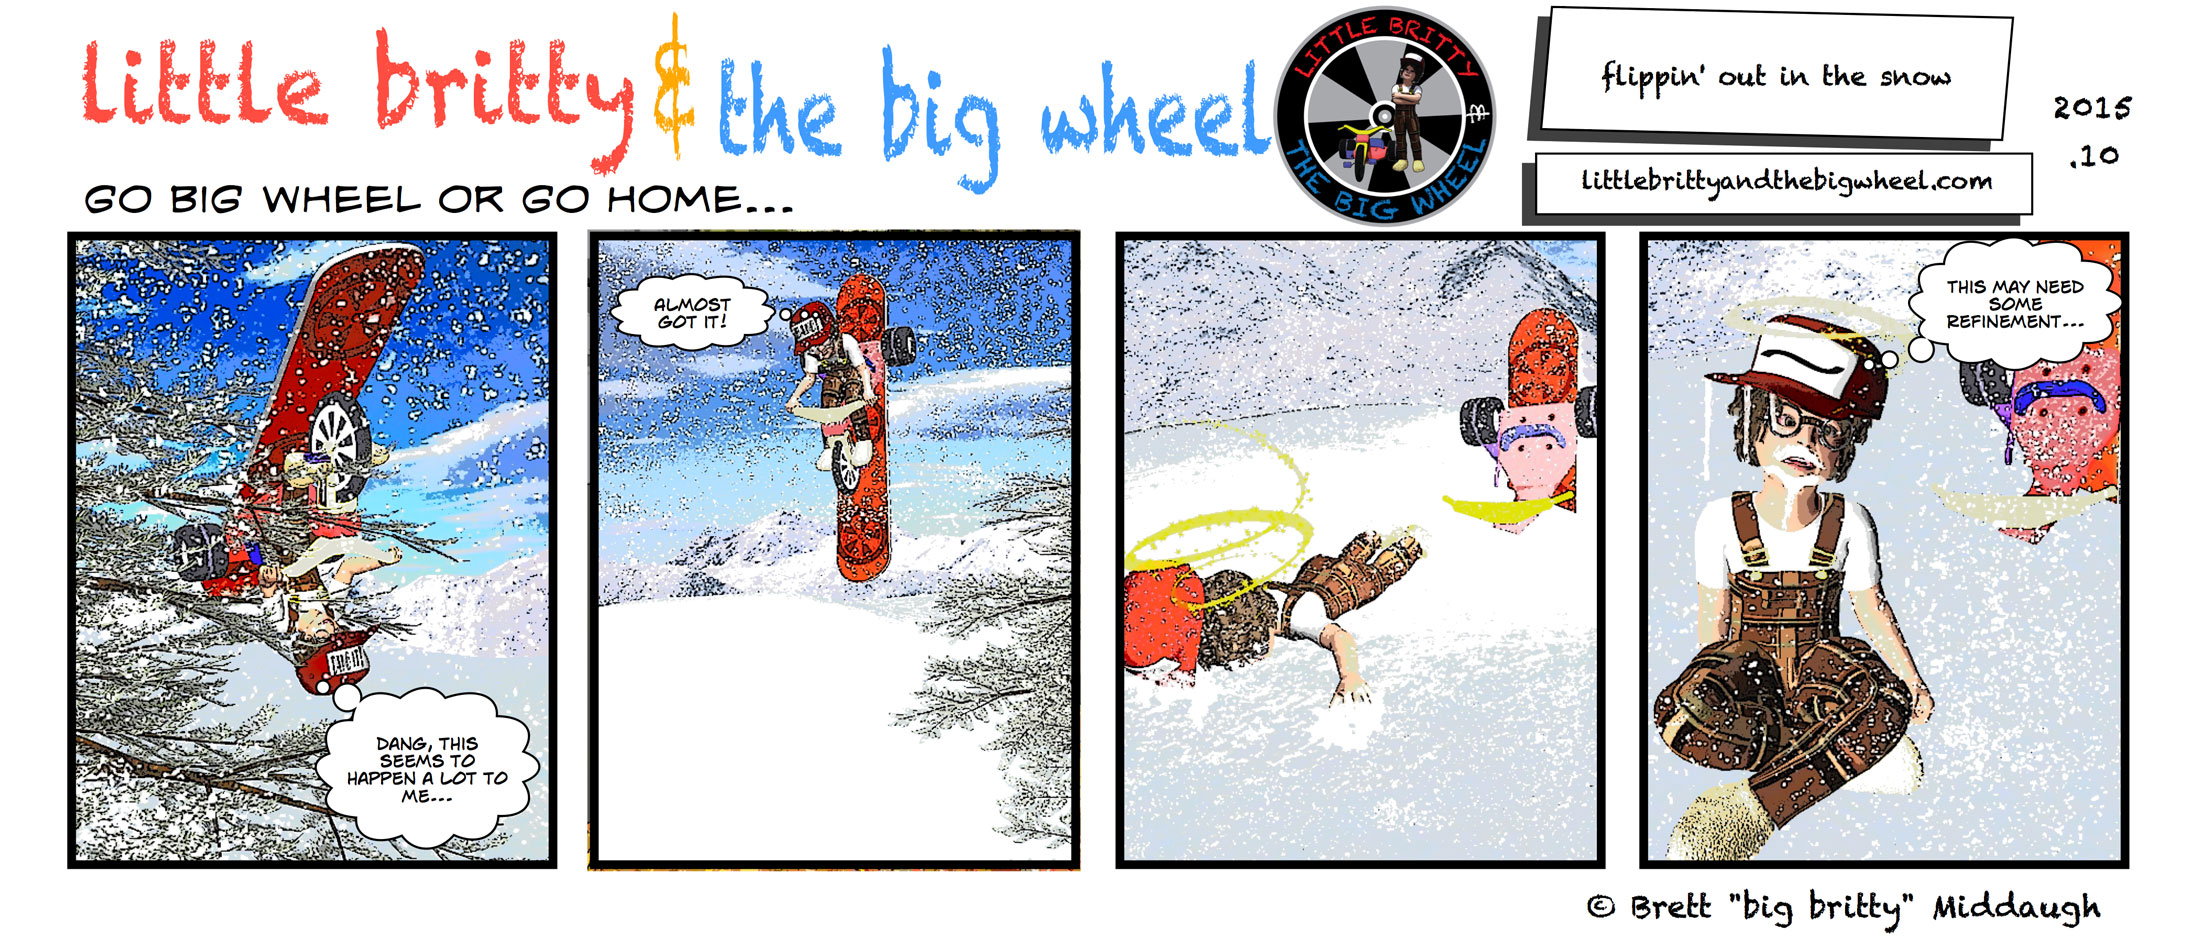 flippin' out in the snow #62